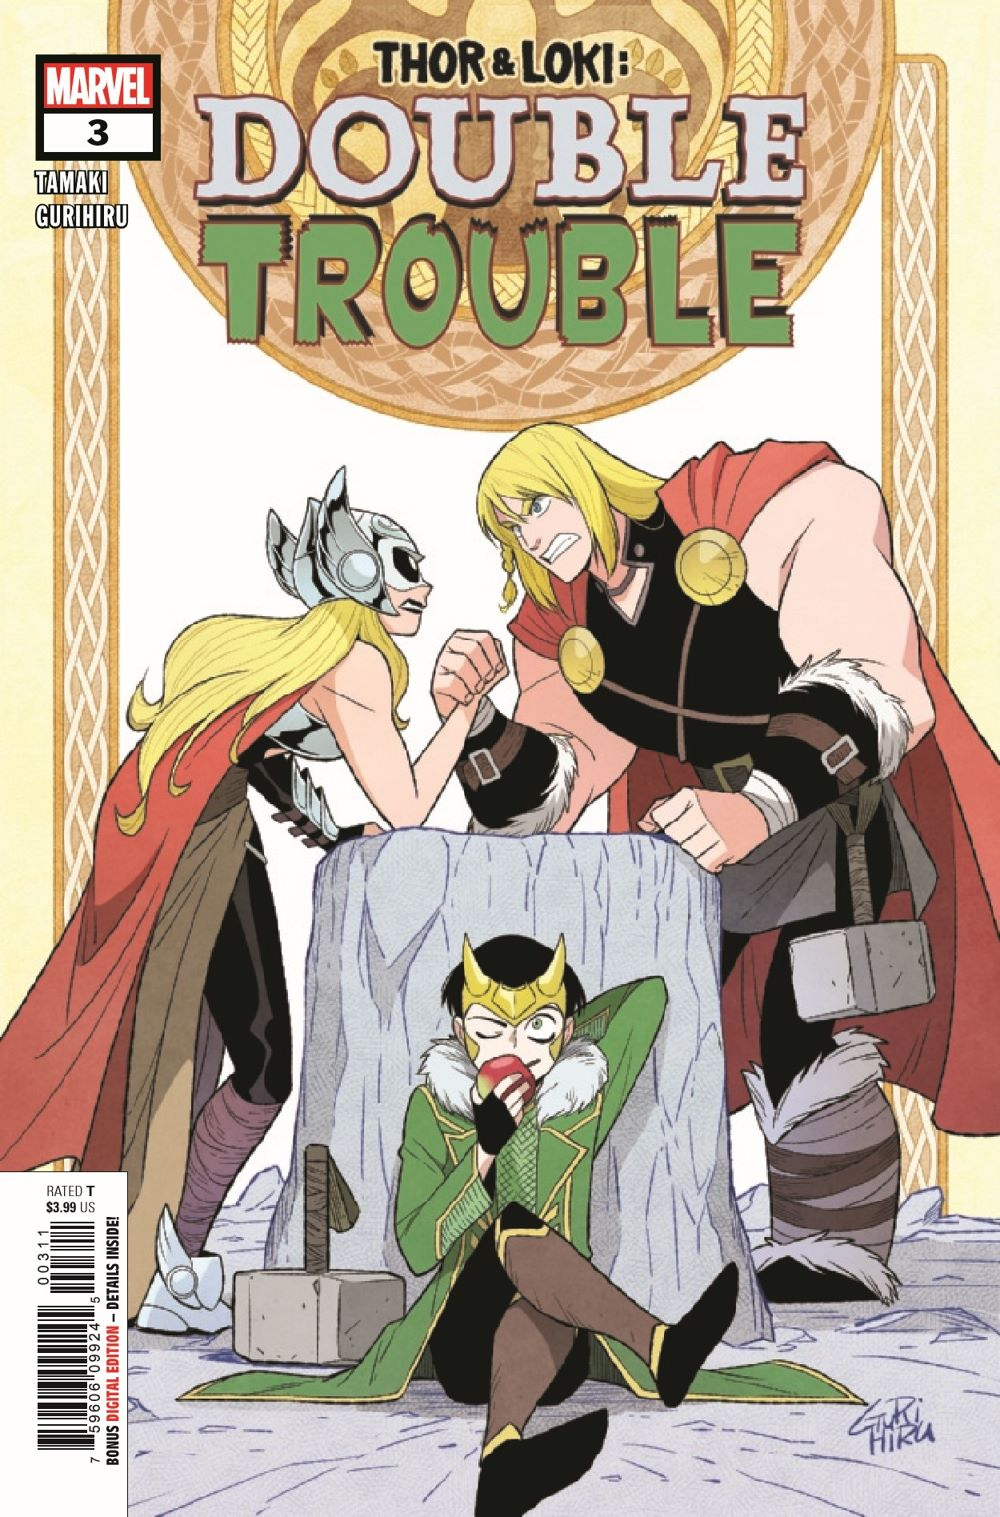 THORLOKIDT2021003_Preview-1 ComicList Previews: THOR AND LOKI DOUBLE TROUBLE #3 (OF 4)